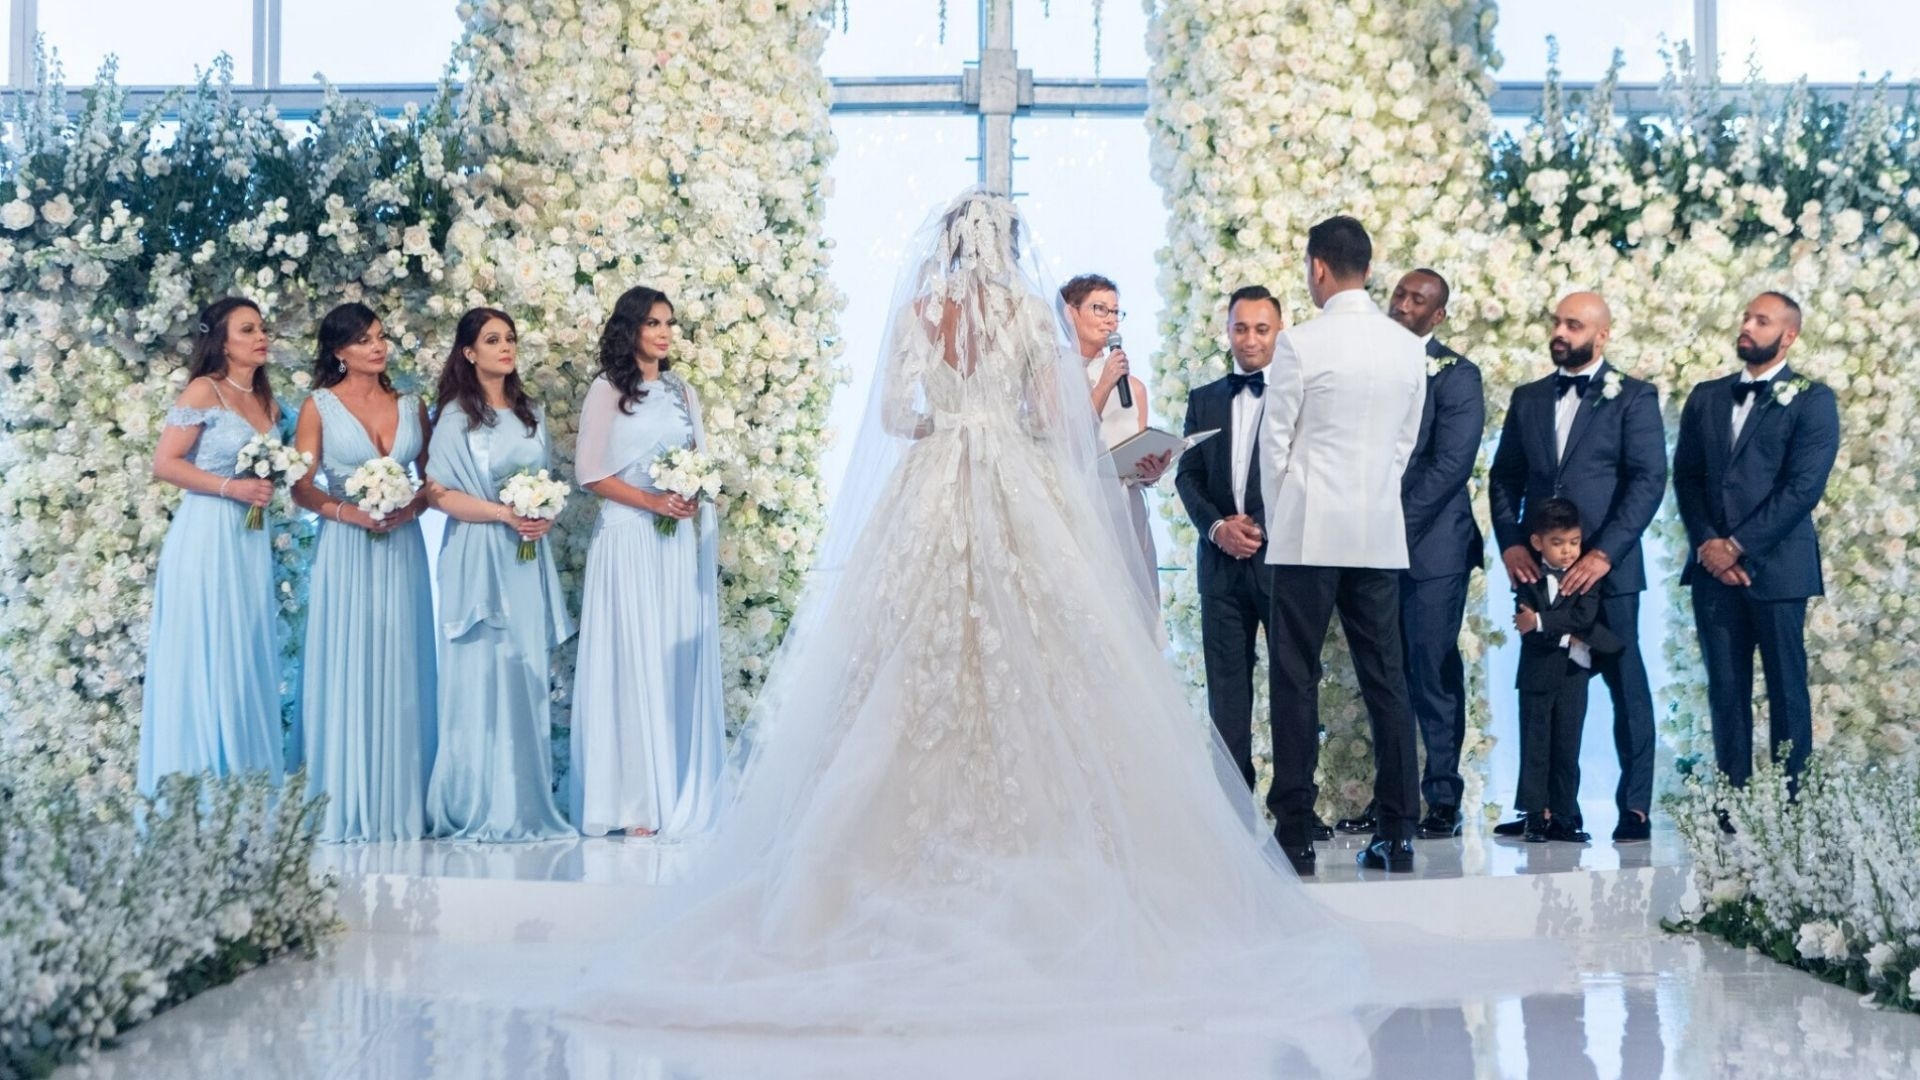 These Are The Best Wedding Venues In The UAE